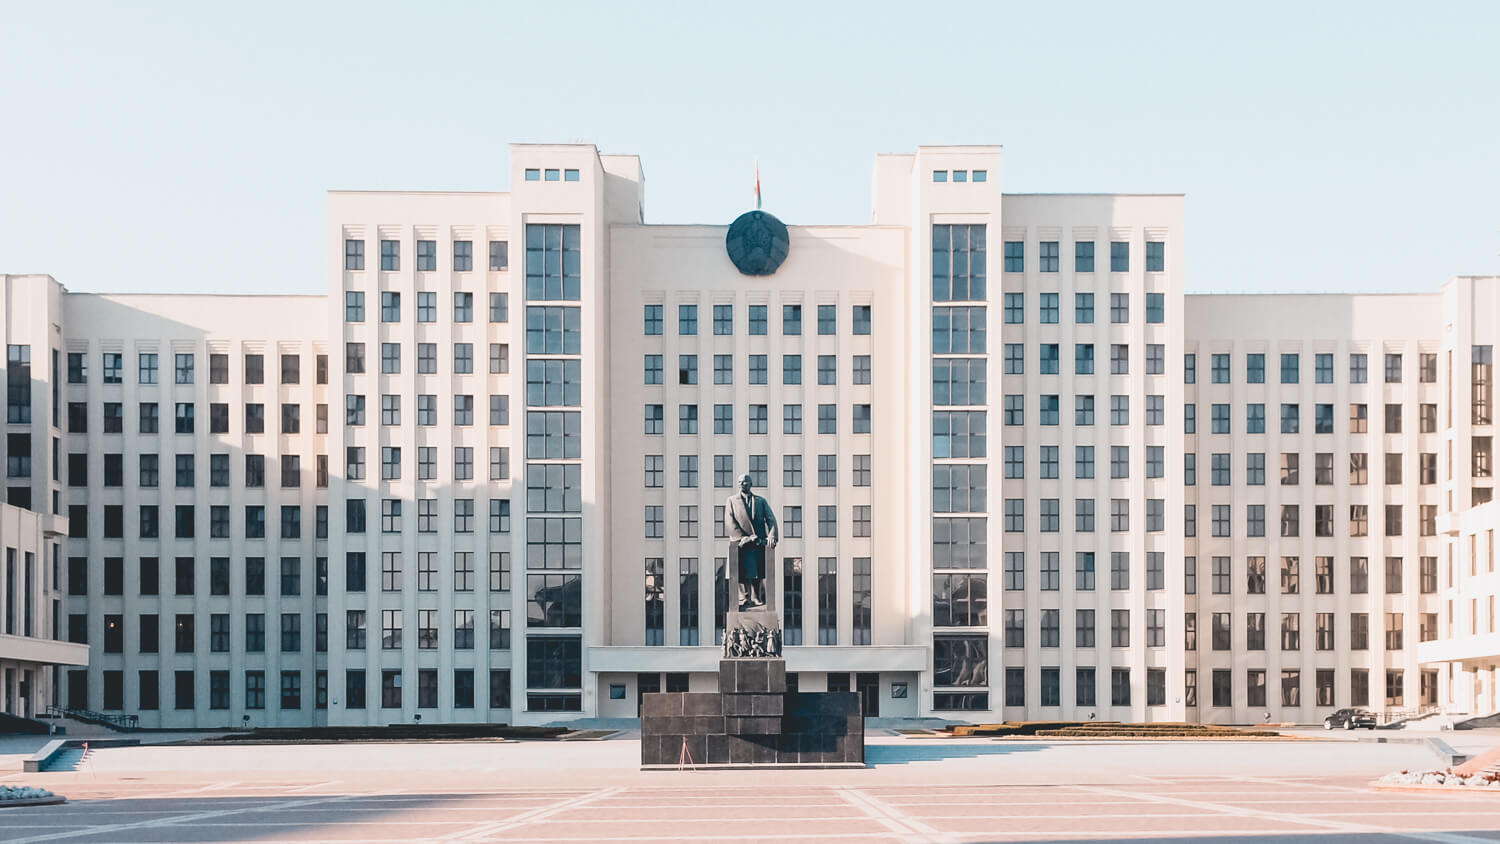 Minsk parliament building, Belarus solo travel tips